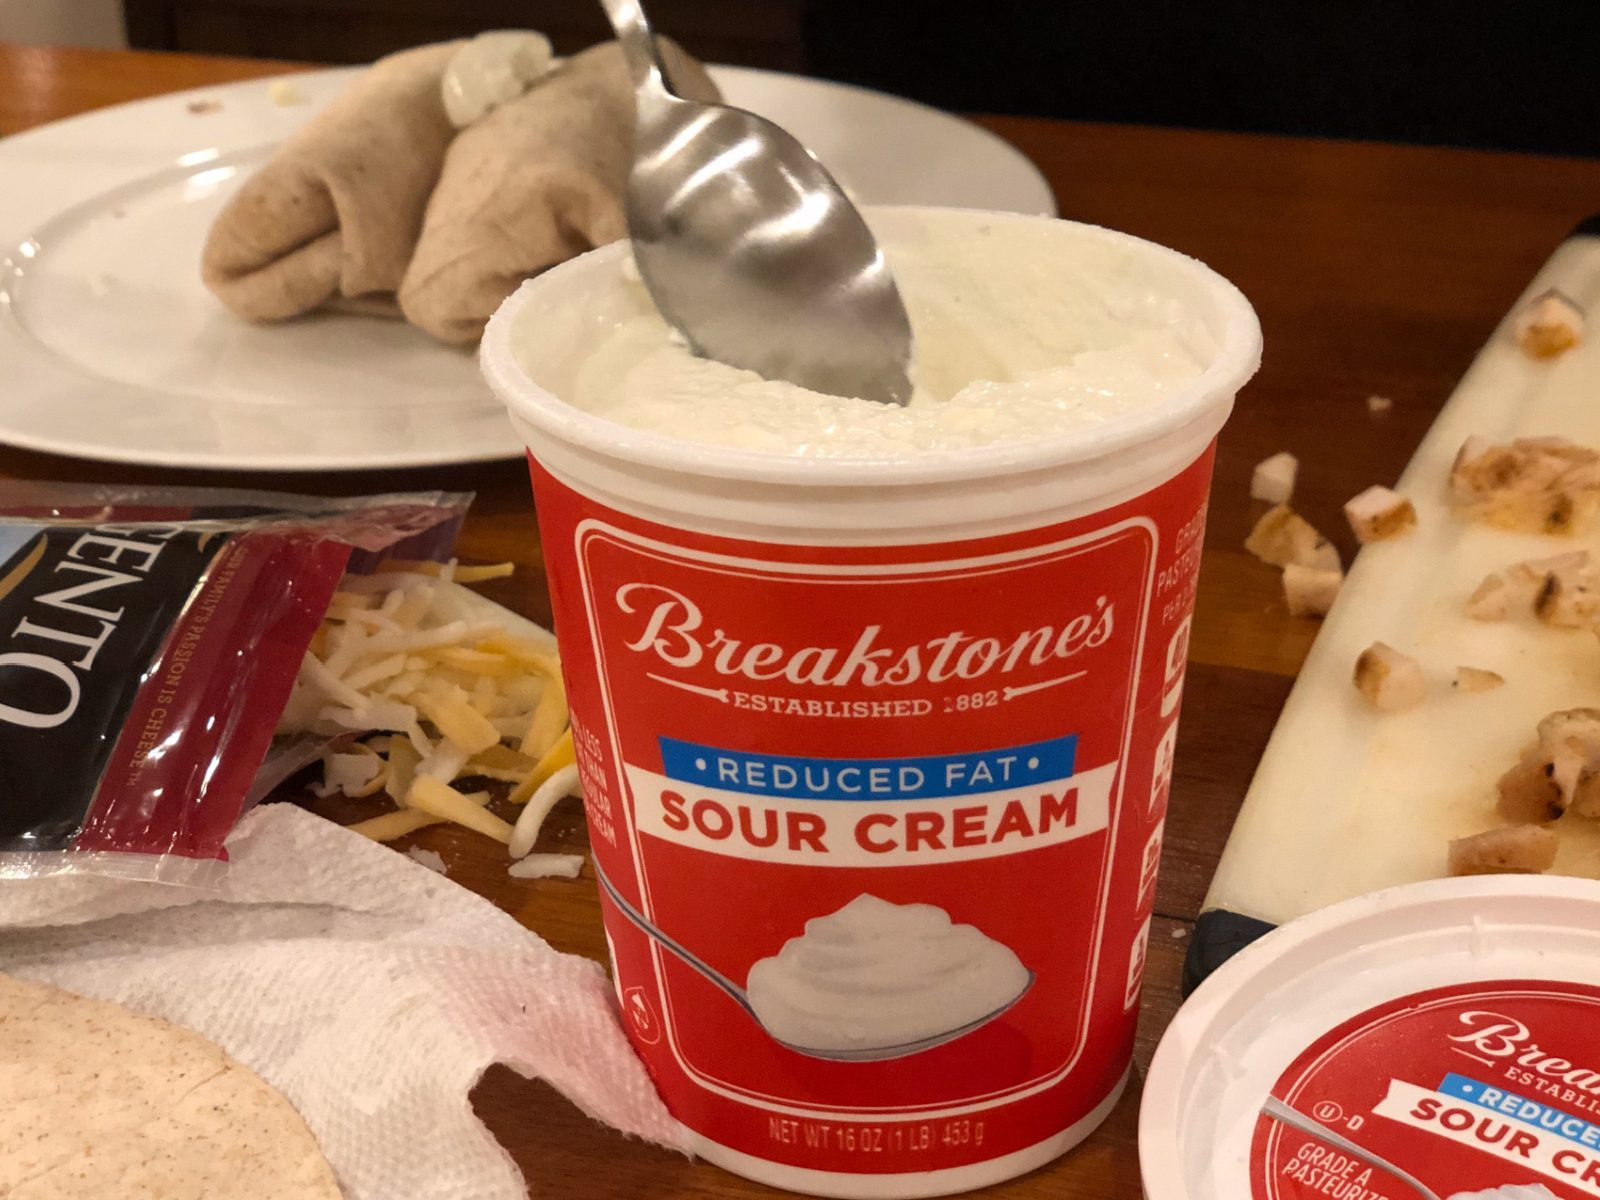 Nice Deals On Breakstone's Sour Cream & Cottage Cheese - As Low As 20¢ on I Heart Publix 1